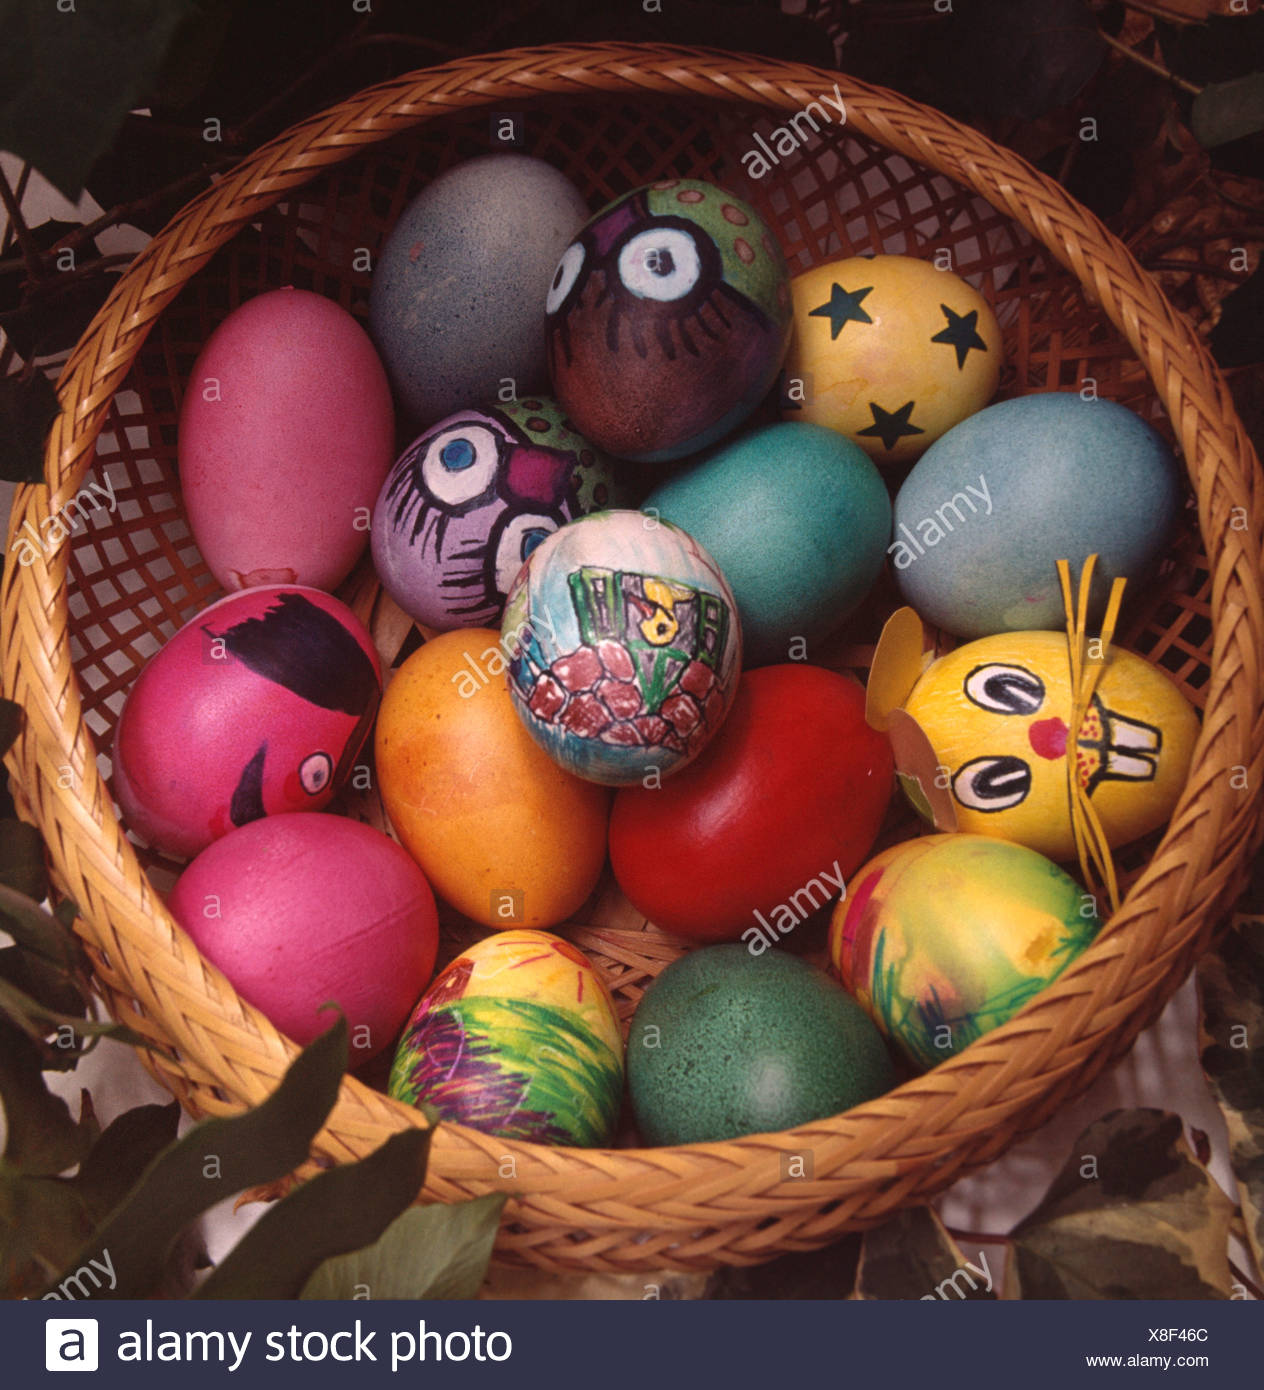 Close Up Of Basket Of Blown Eggs Decorated And Painted In